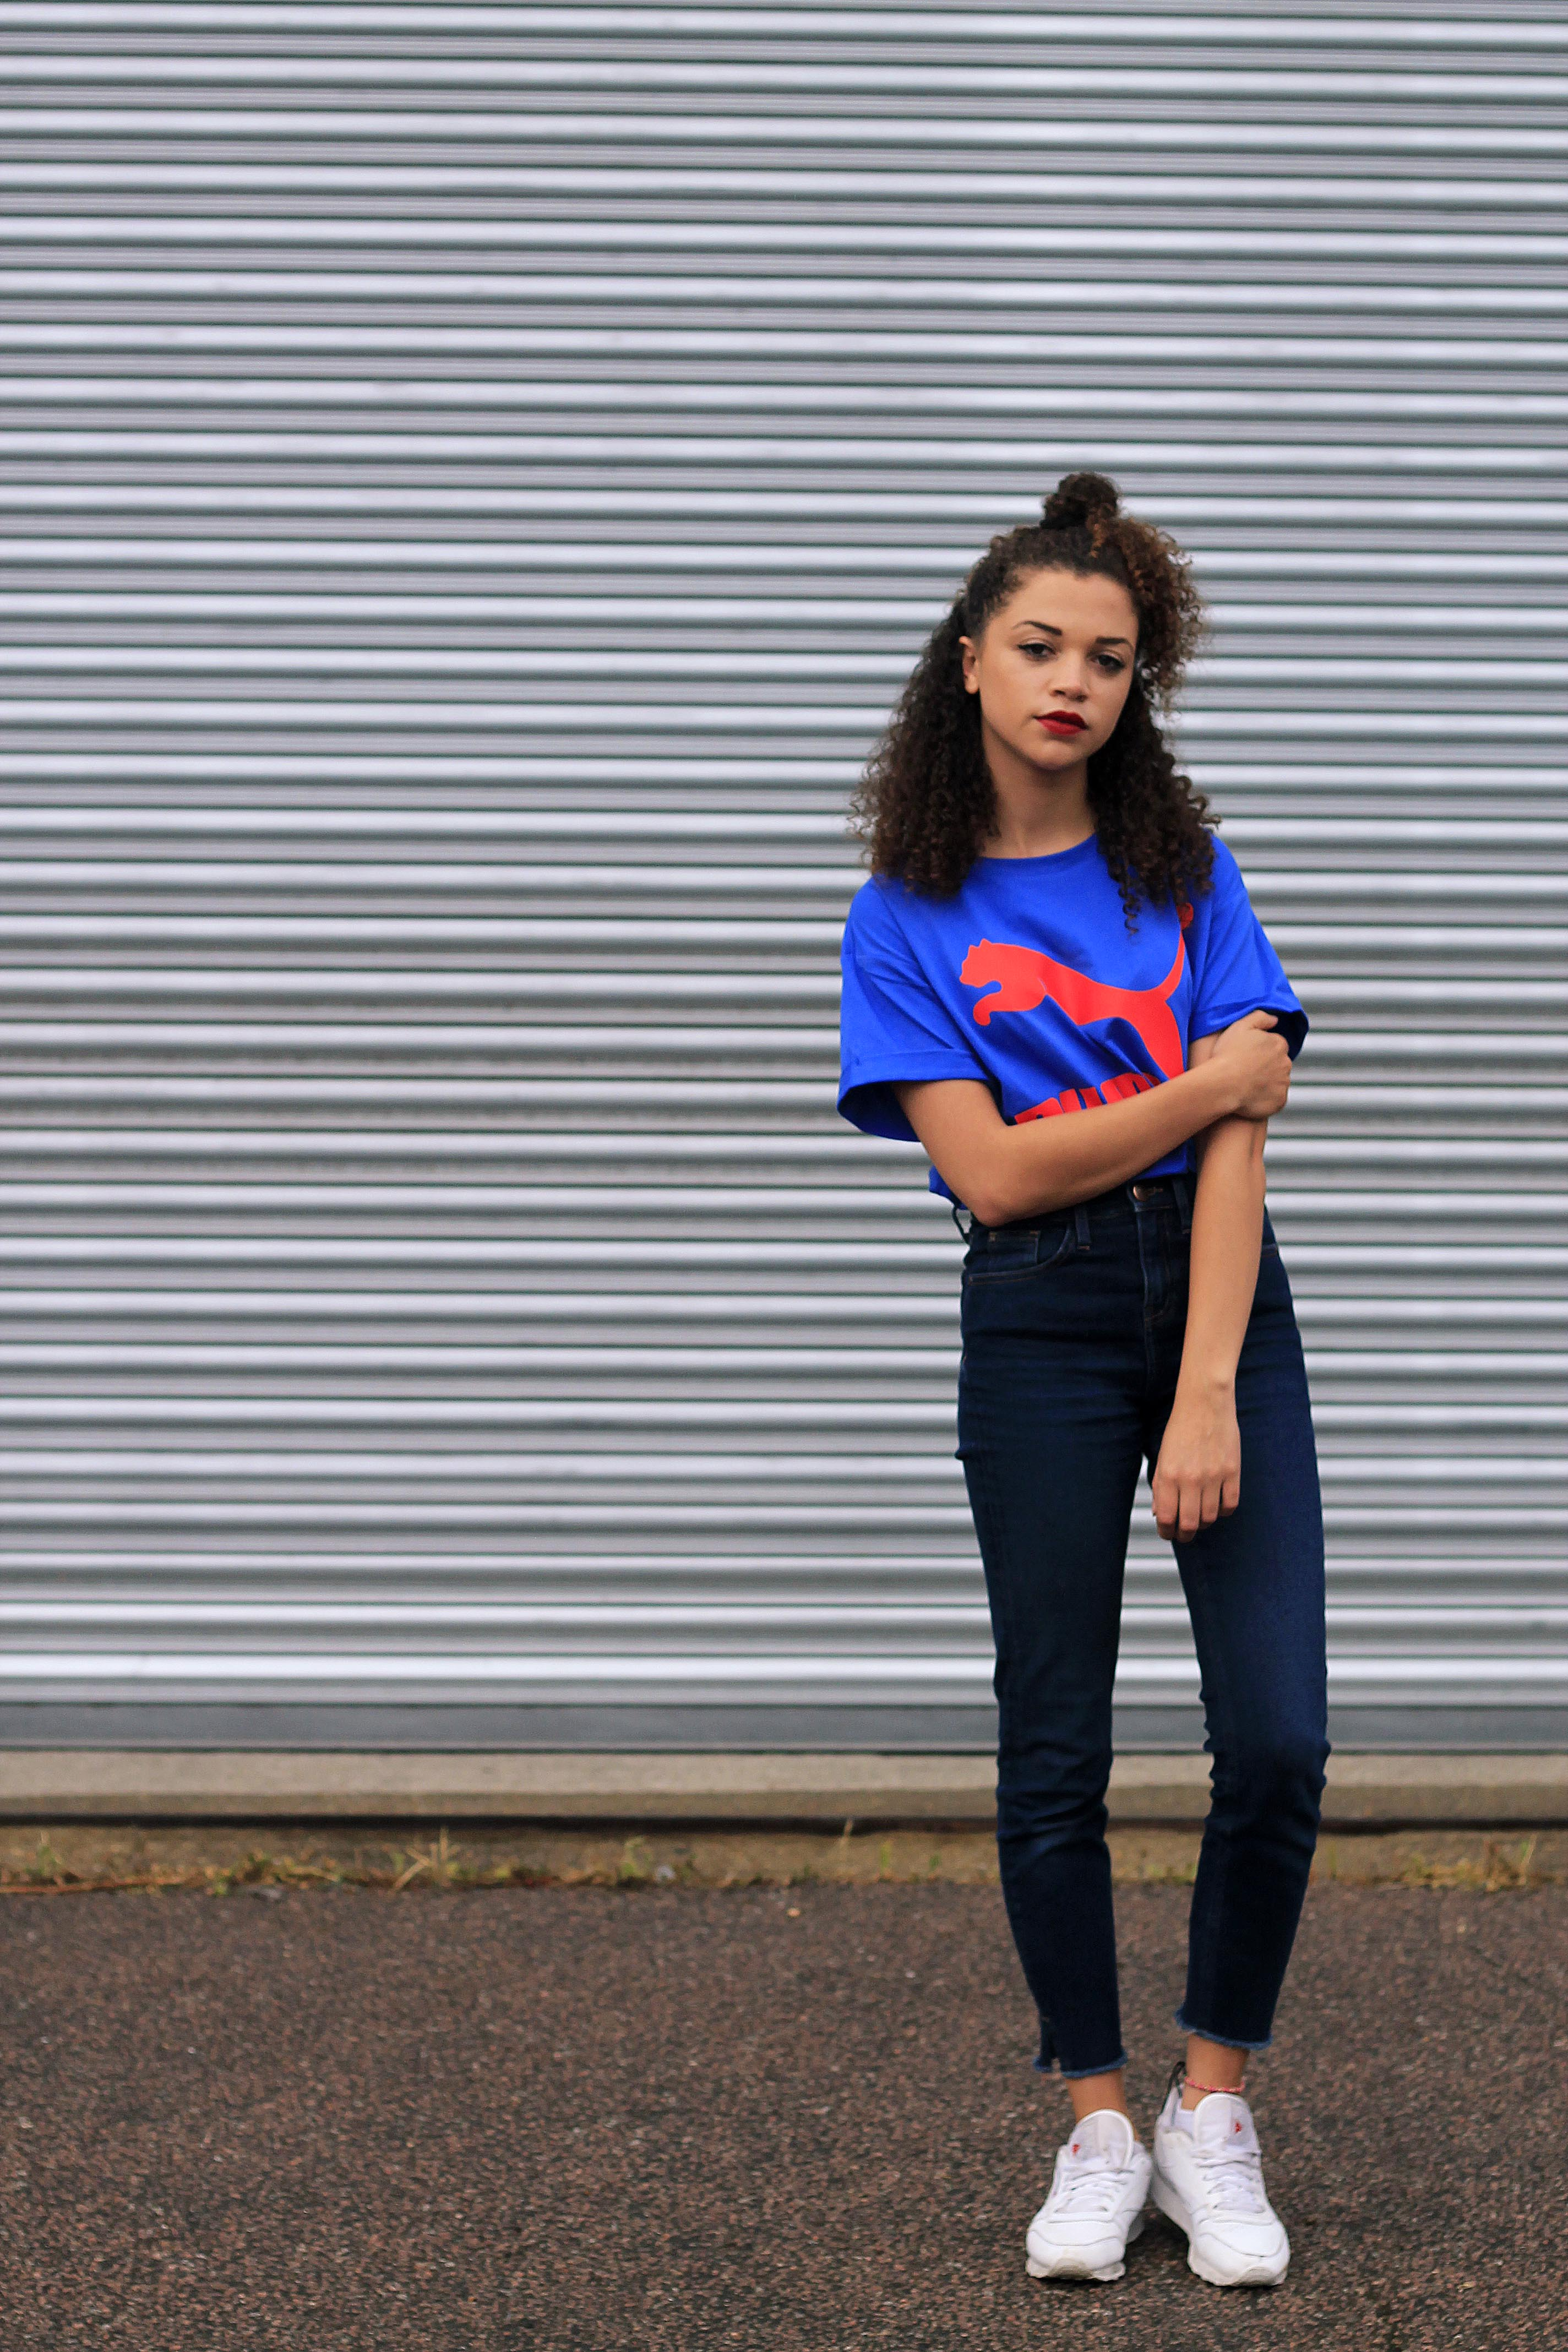 uk curly hair blogger - retro puma tshirt 1